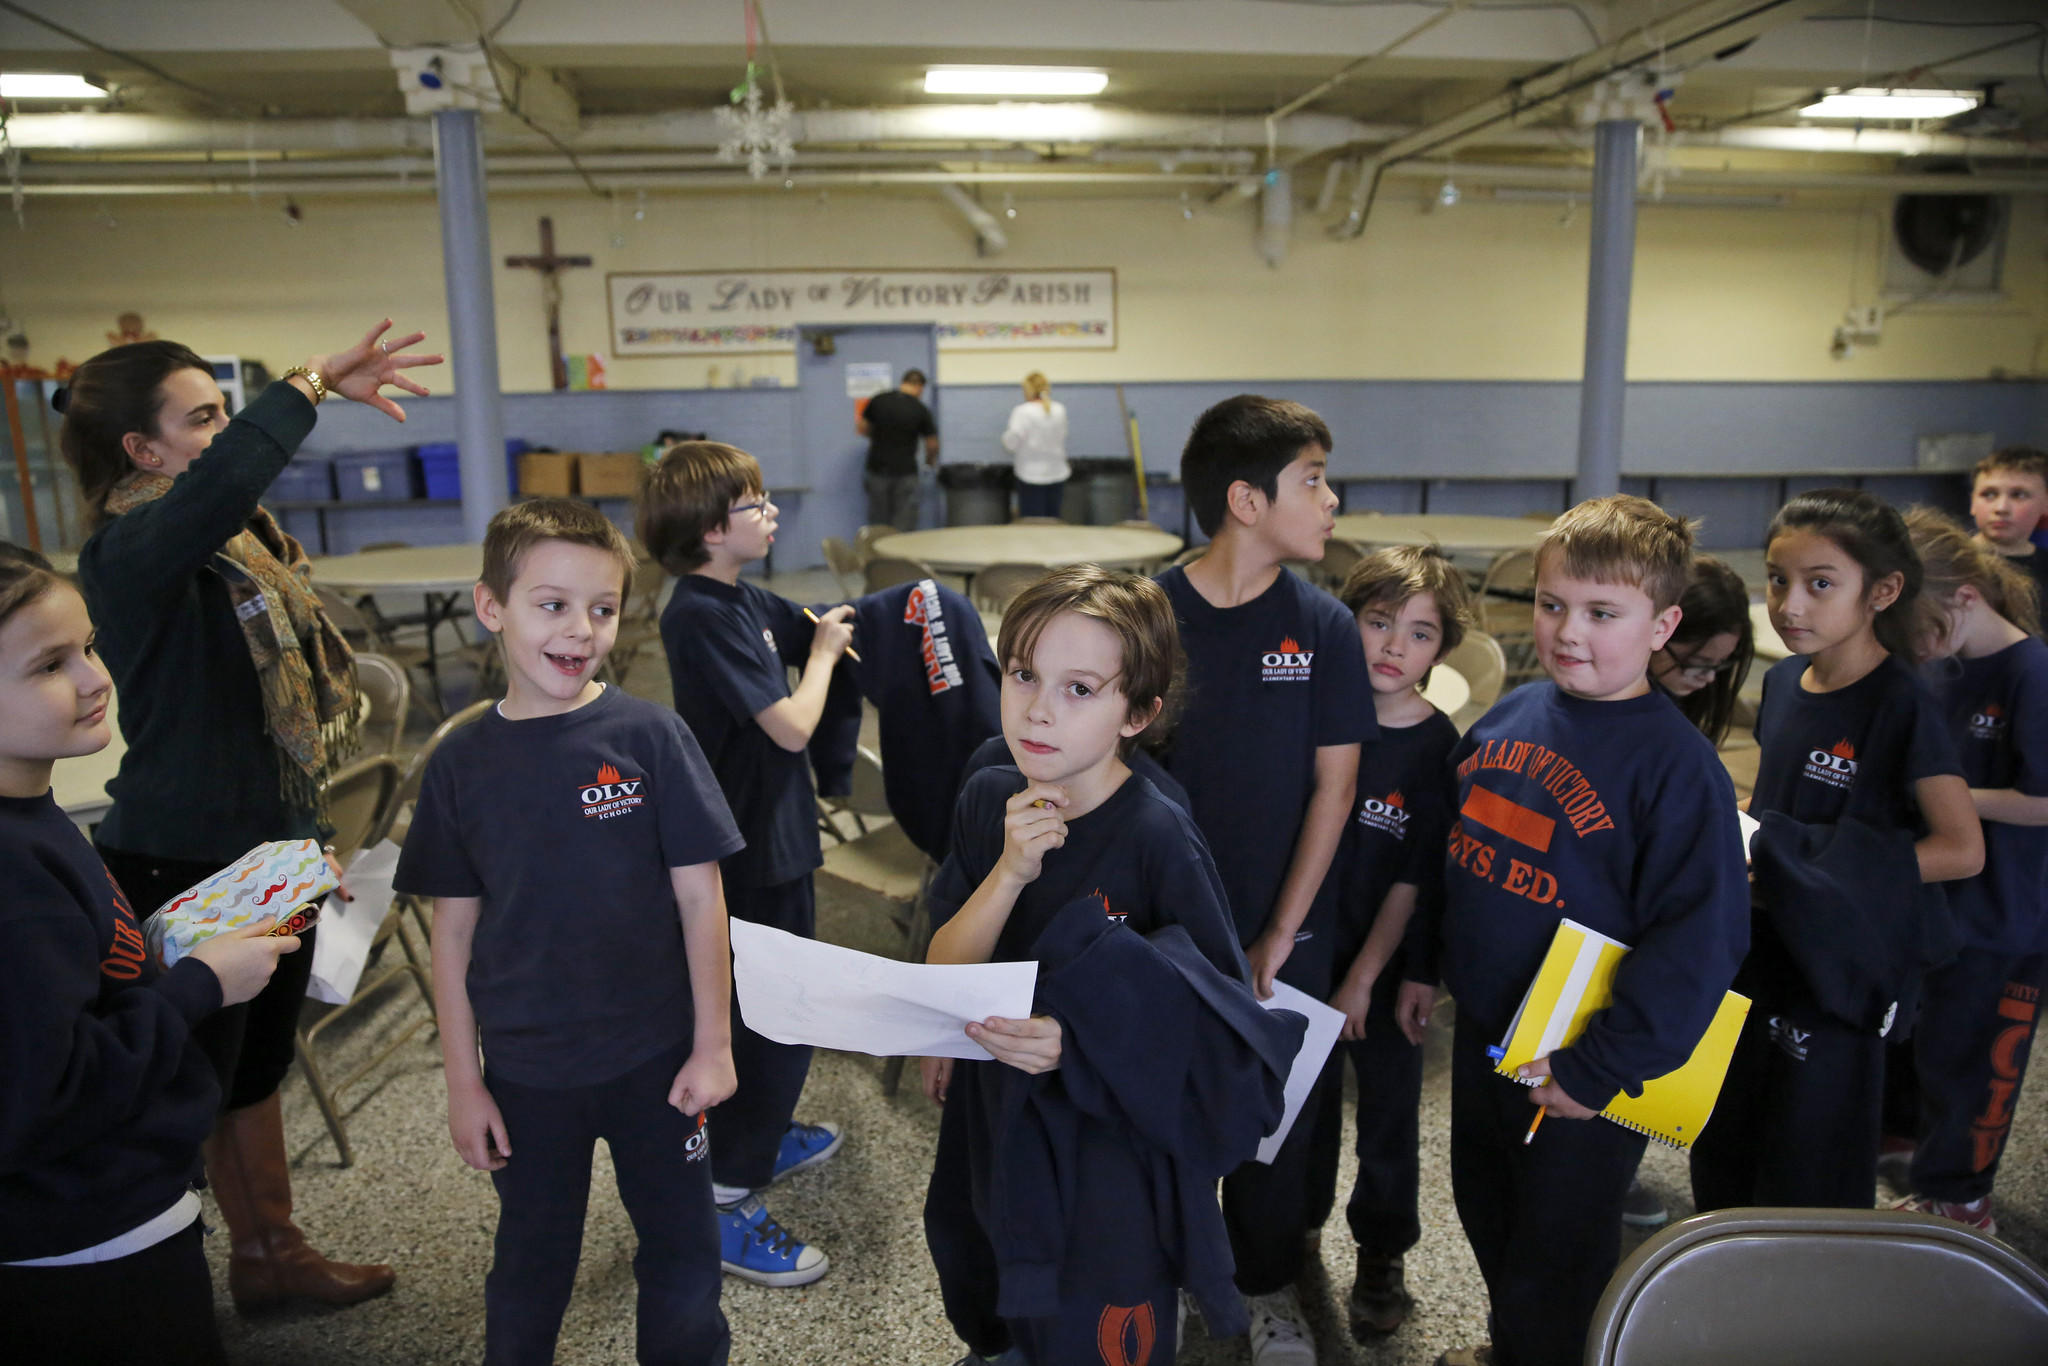 Third grade students walk through the lunch room at Our Lady of Victory in Chicago on Jan. 9. School officials have been told the school may remain open after a fundraising effort. Our Lady of Victor and St. Christopher Catholic School in Midlothian both have been taken off a list of Catholic school slated for closing this year.